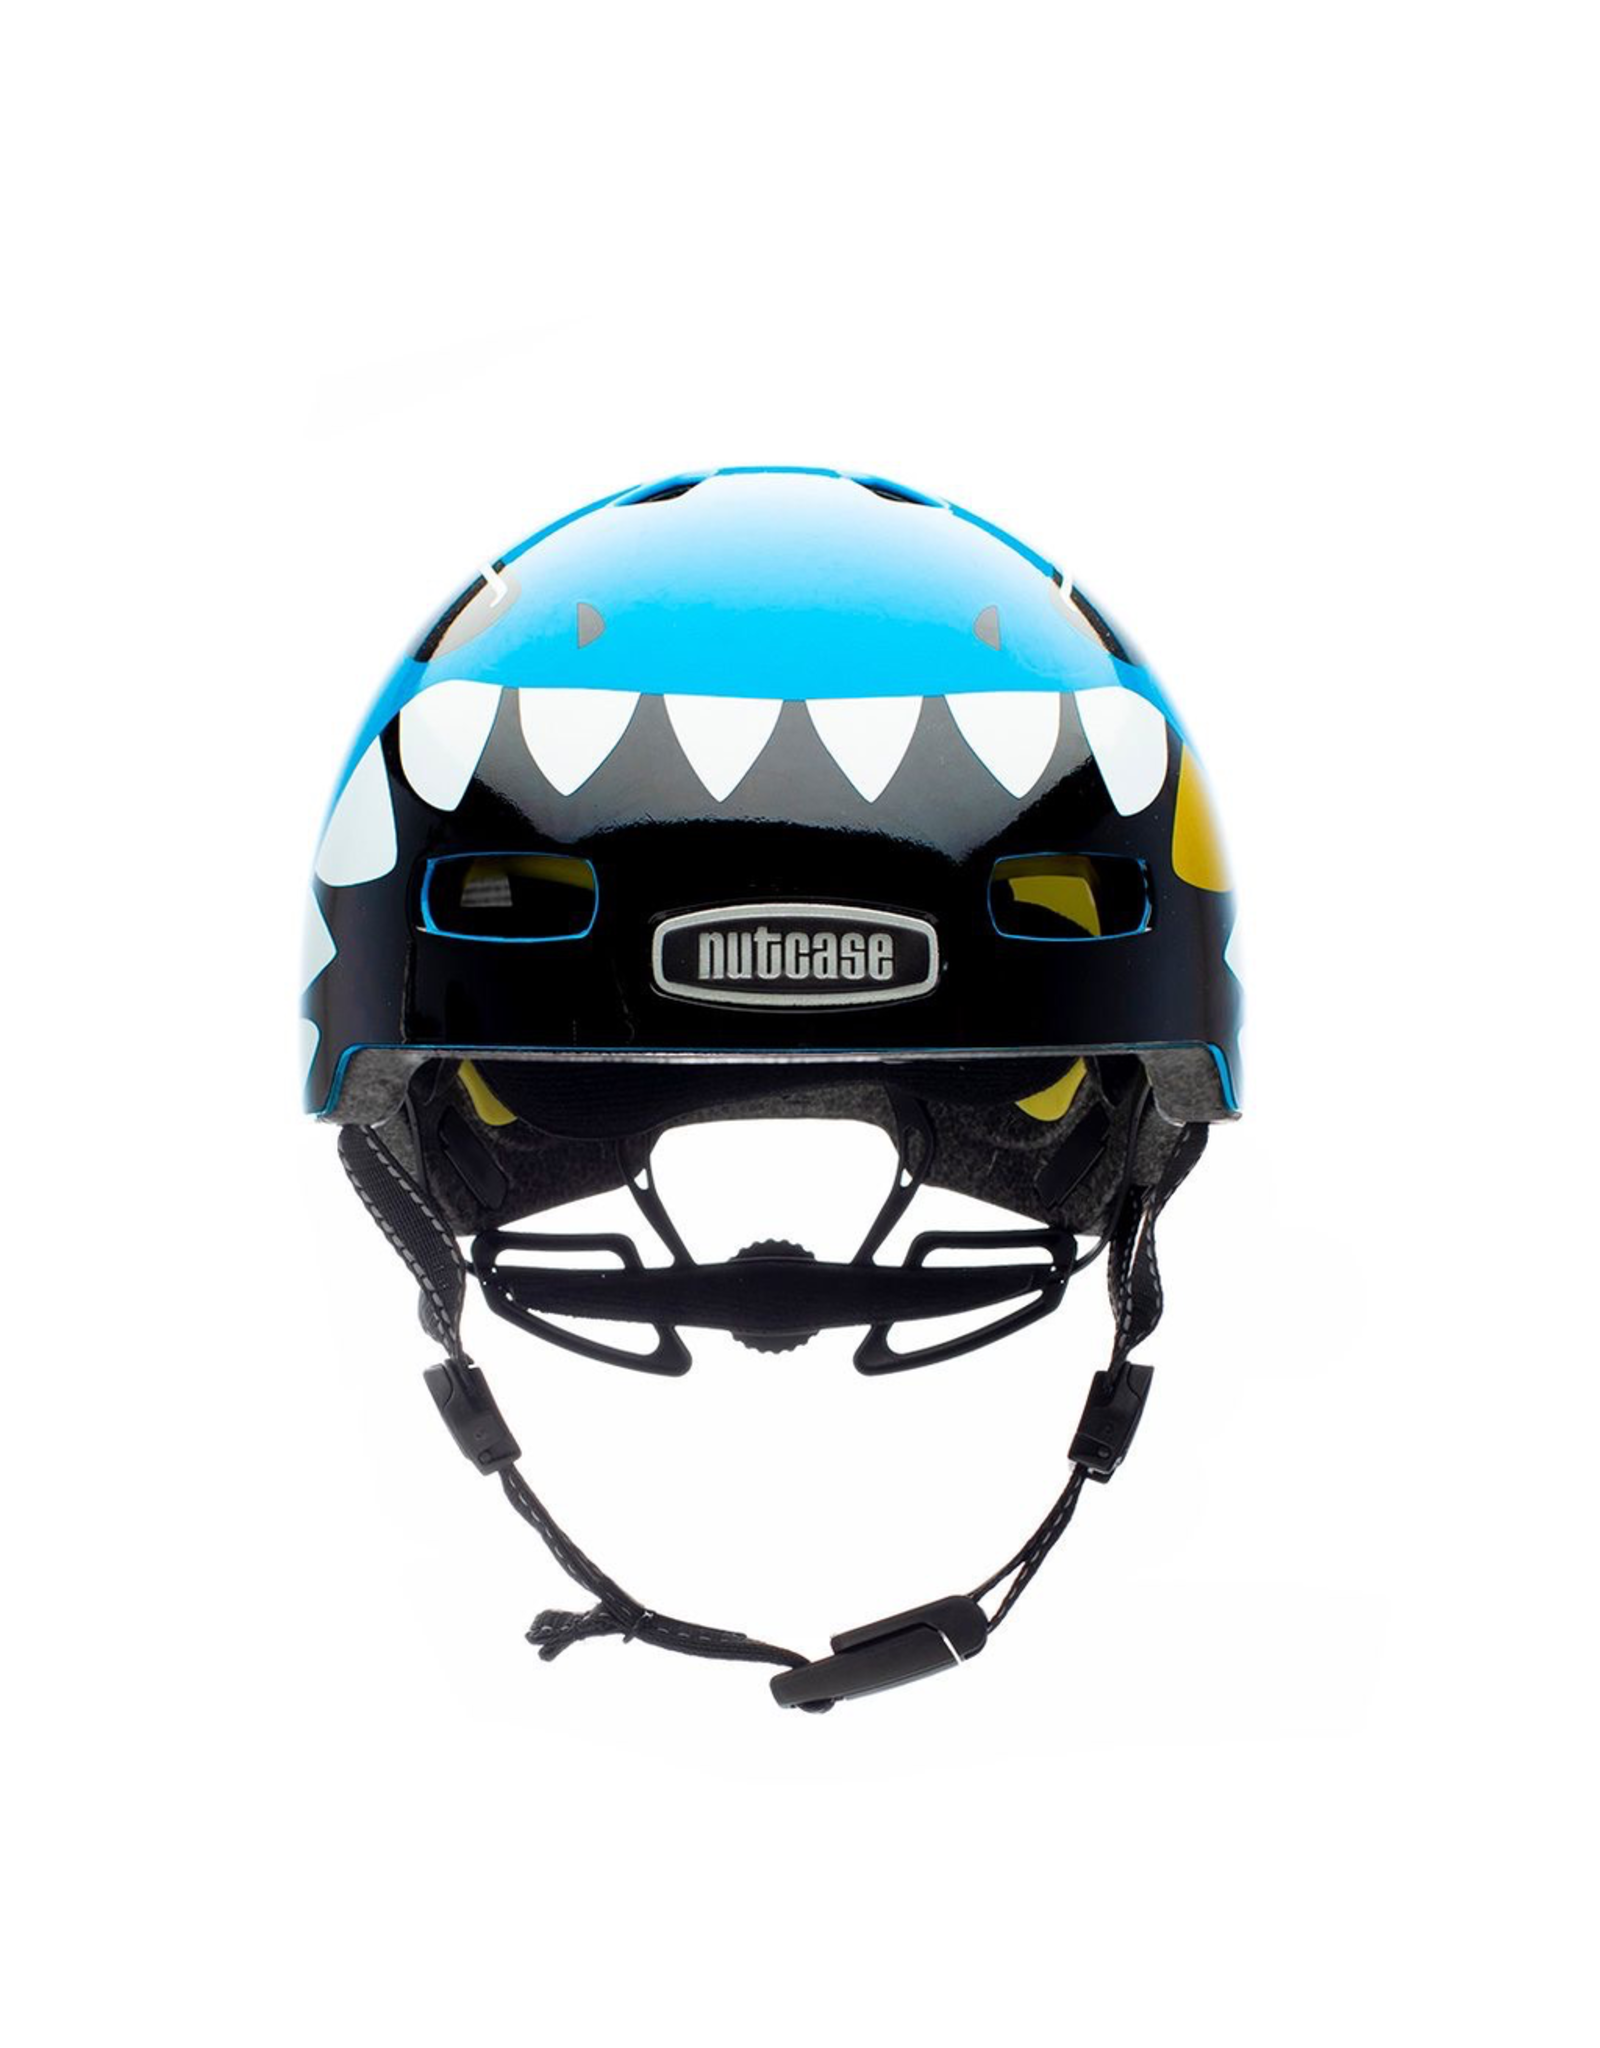 Nutcase LITTLE NUTTY LIL' JAWS METALLIC MIPS HELMET – T